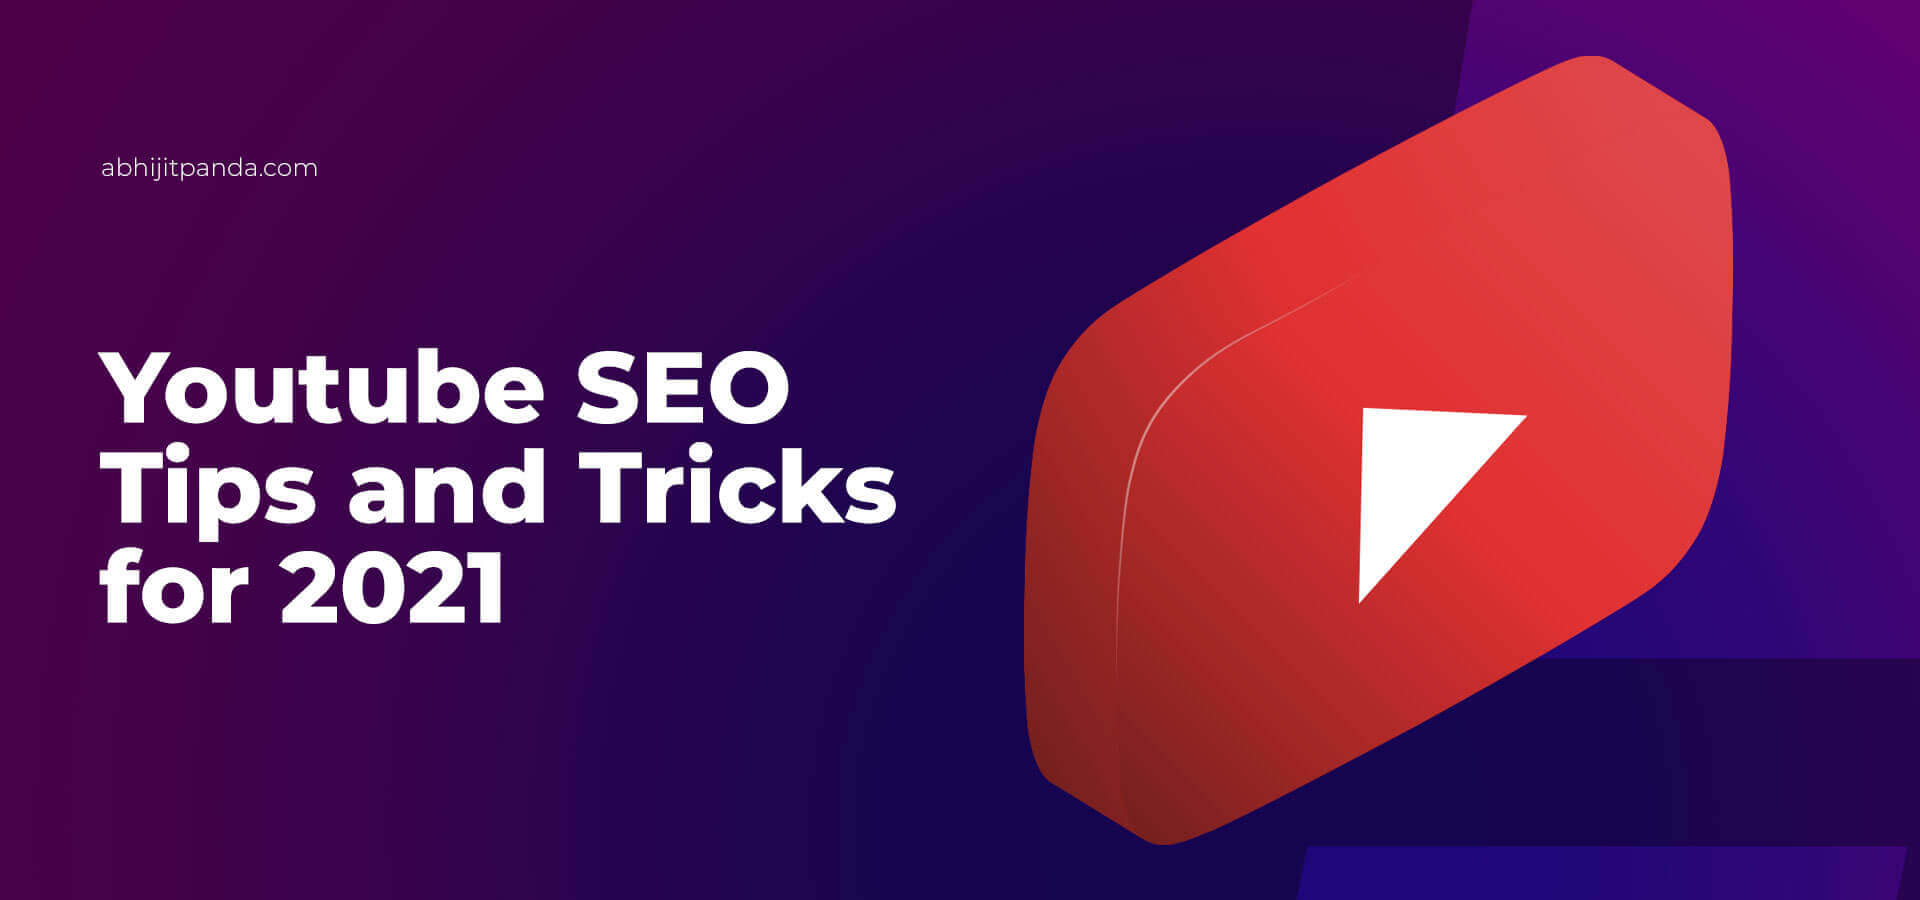 YouTube SEO Tips and Tricks for 2021